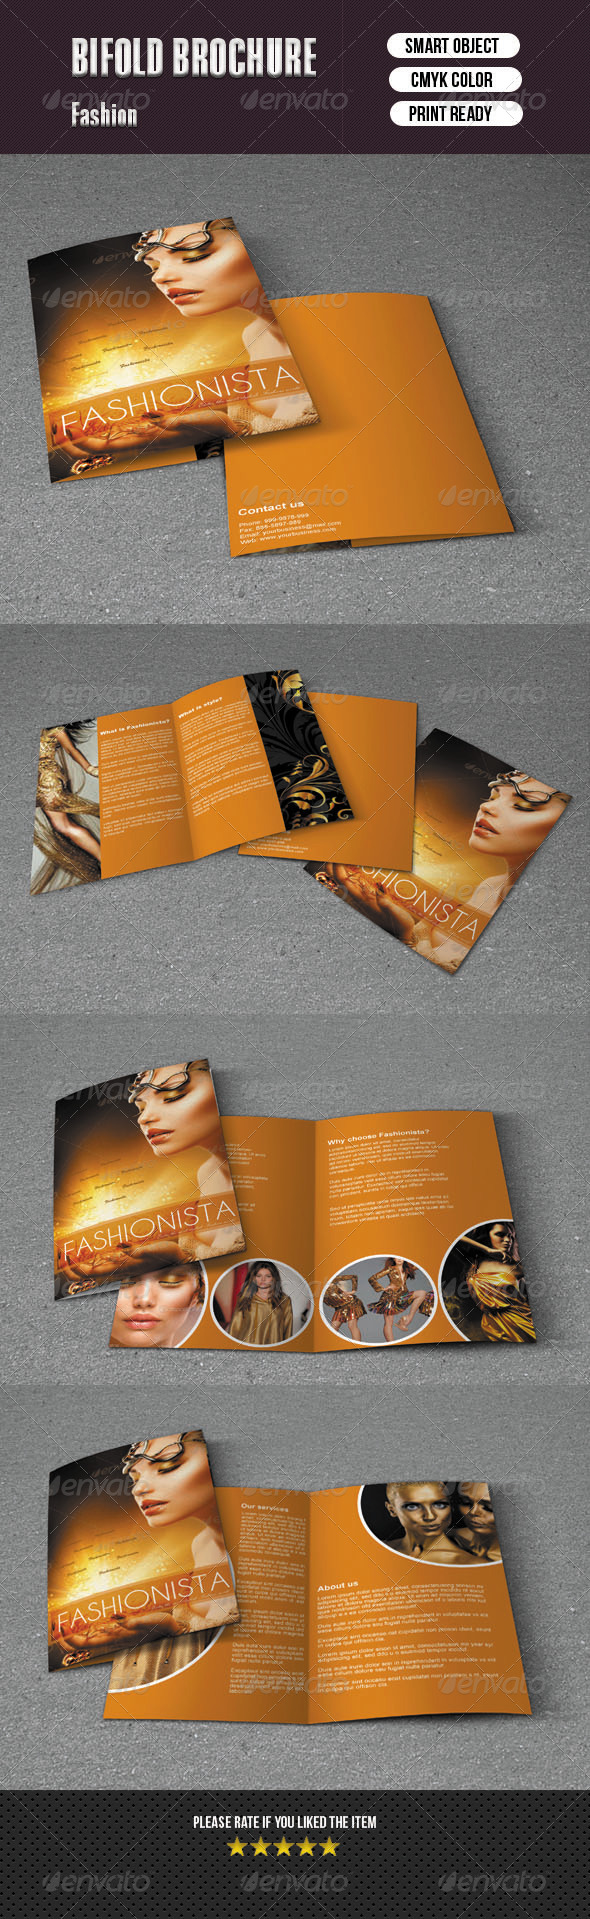 Bifold Brochure For Fashion - Brochures Print Templates